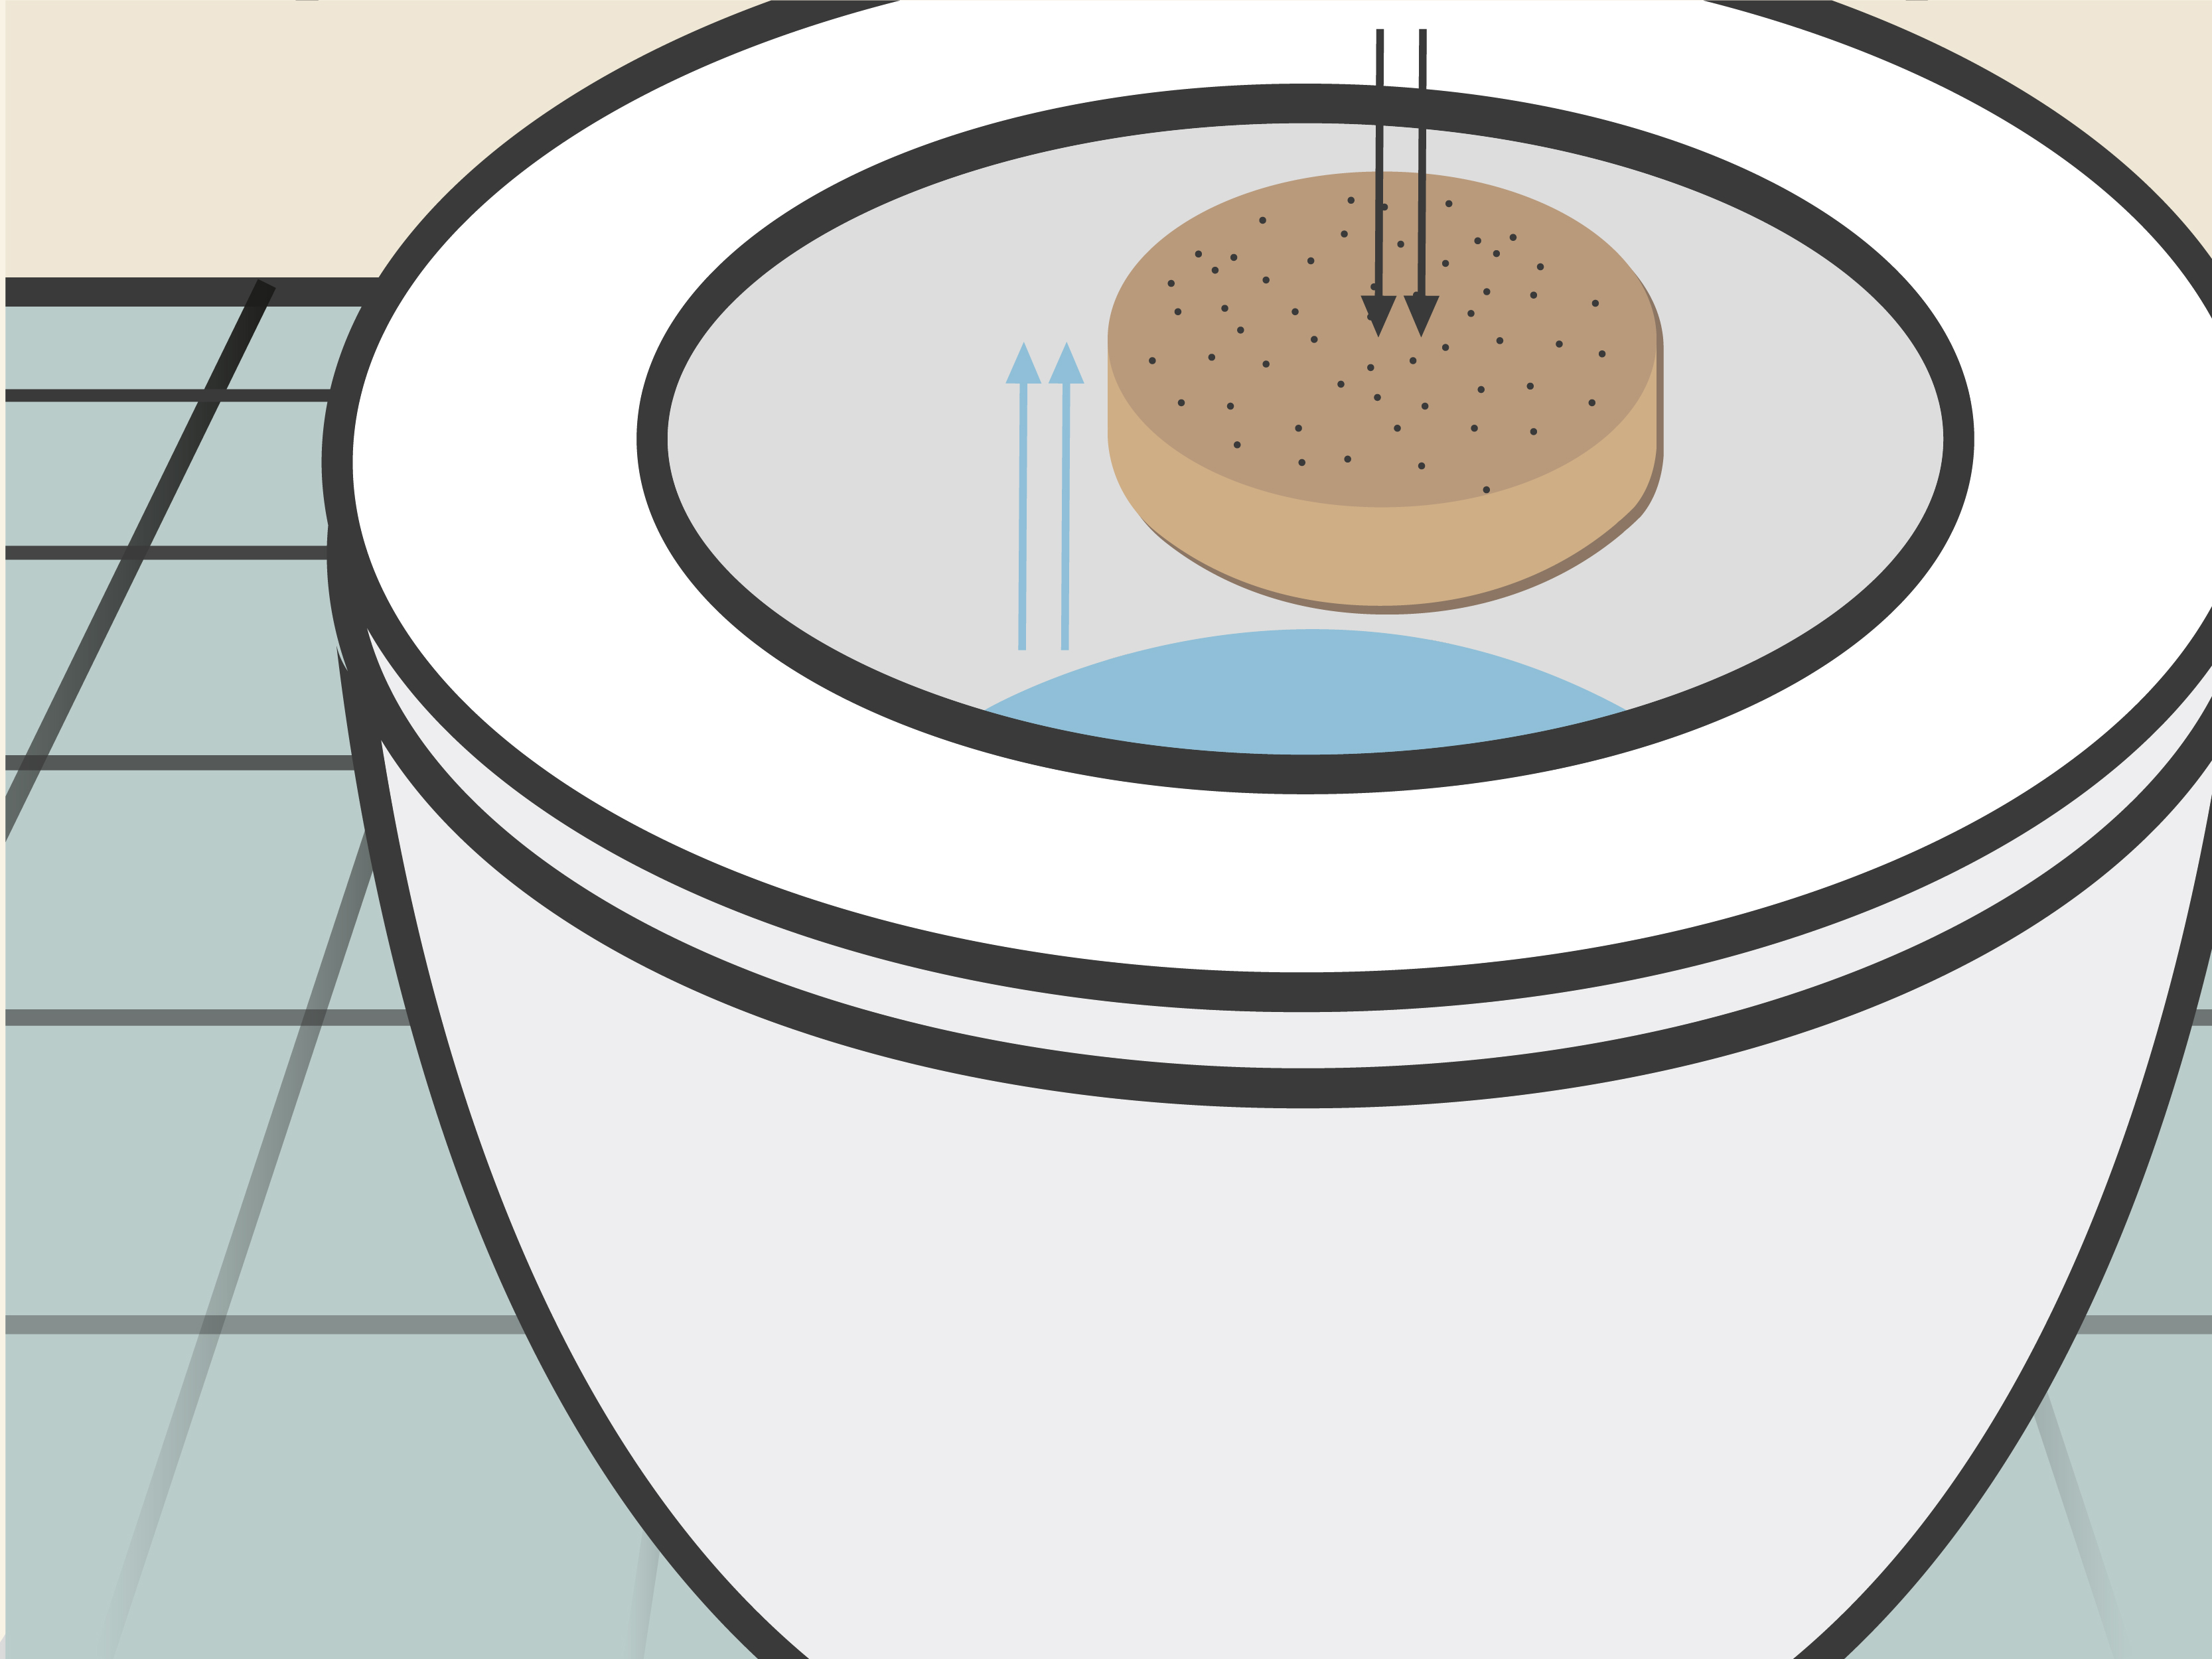 Sucking drain free clipart clip art stock How to Drain a Toilet: 9 Steps (with Pictures) - wikiHow clip art stock